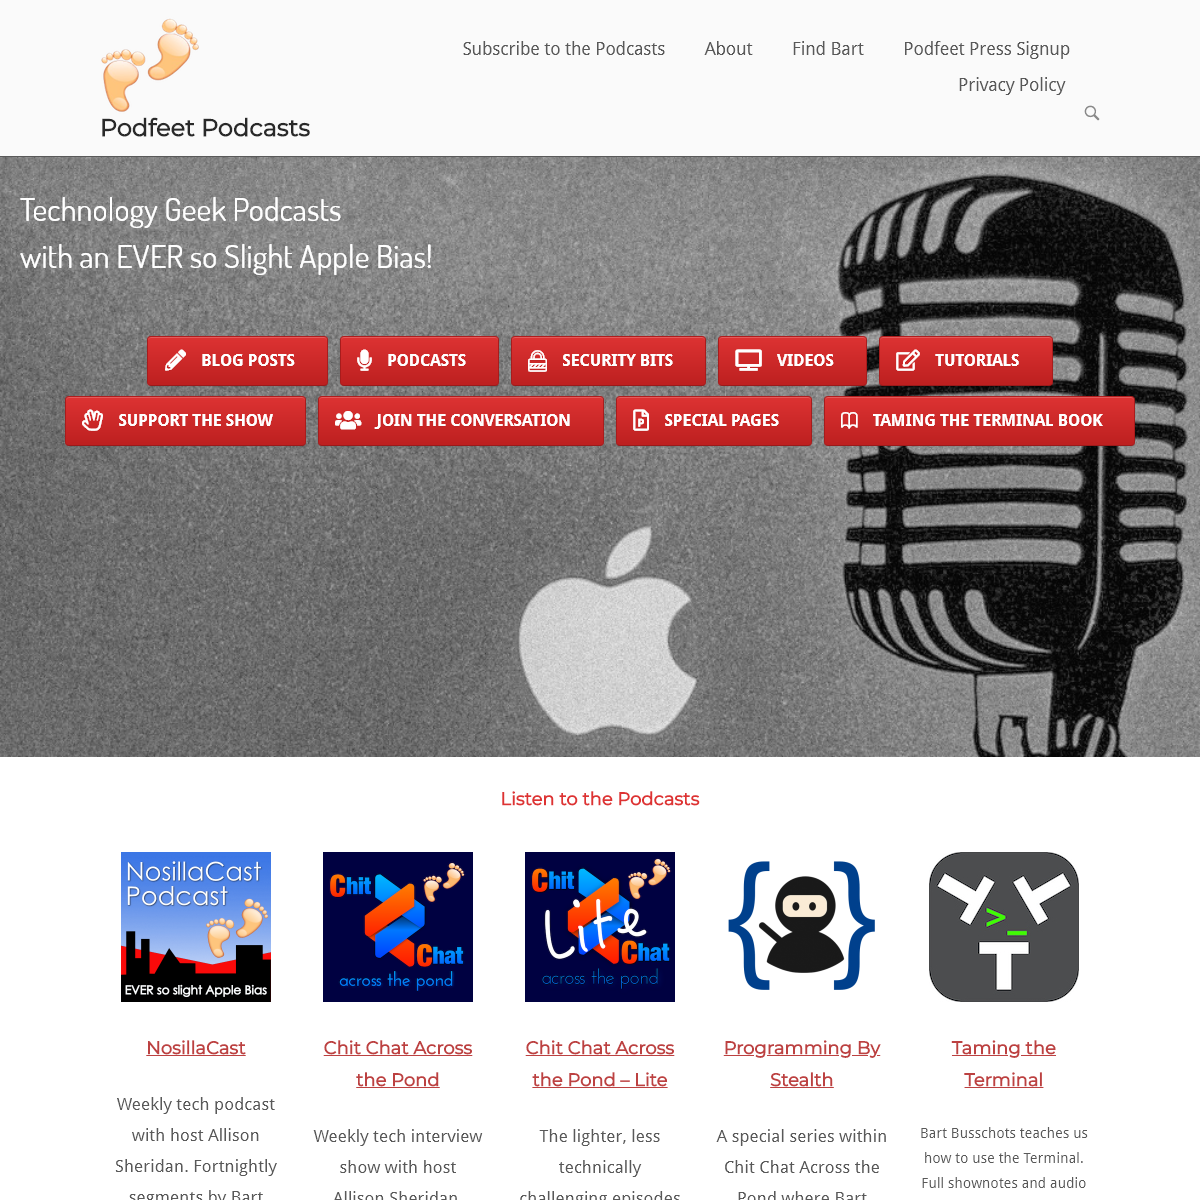 Home Page - Podfeet Podcasts